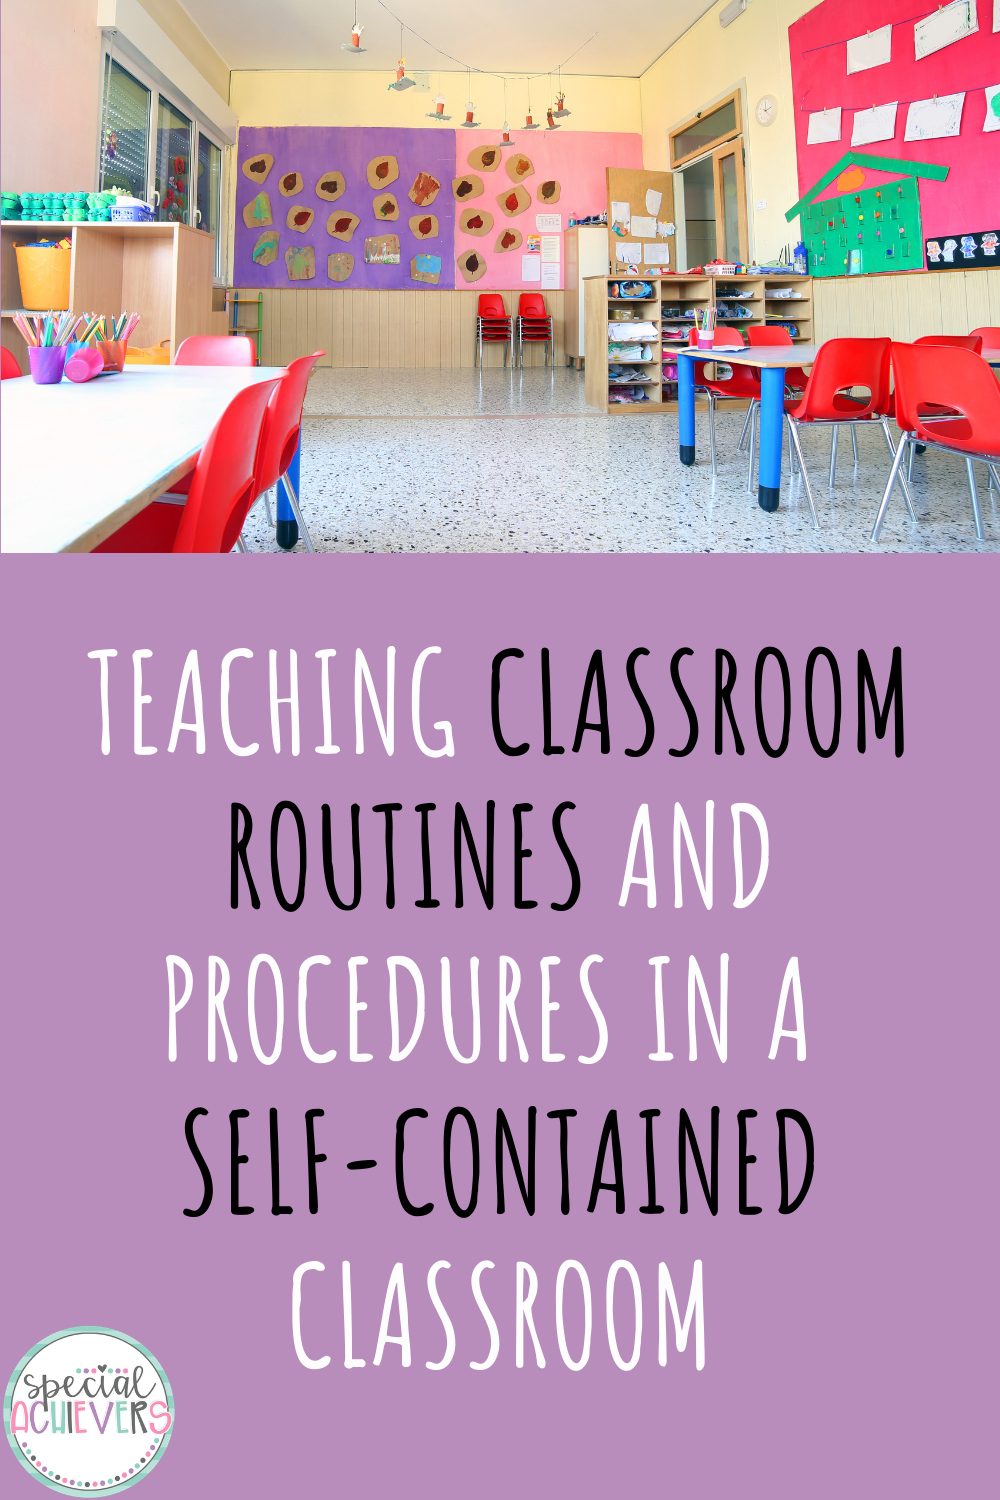 Picture of an empty elementary classroom. In the classroom are small group tables and chairs, in addition to purple and pink bulletin boards. Below the image is the following text: teaching classroom routines and procedures in a self-contained classroom.